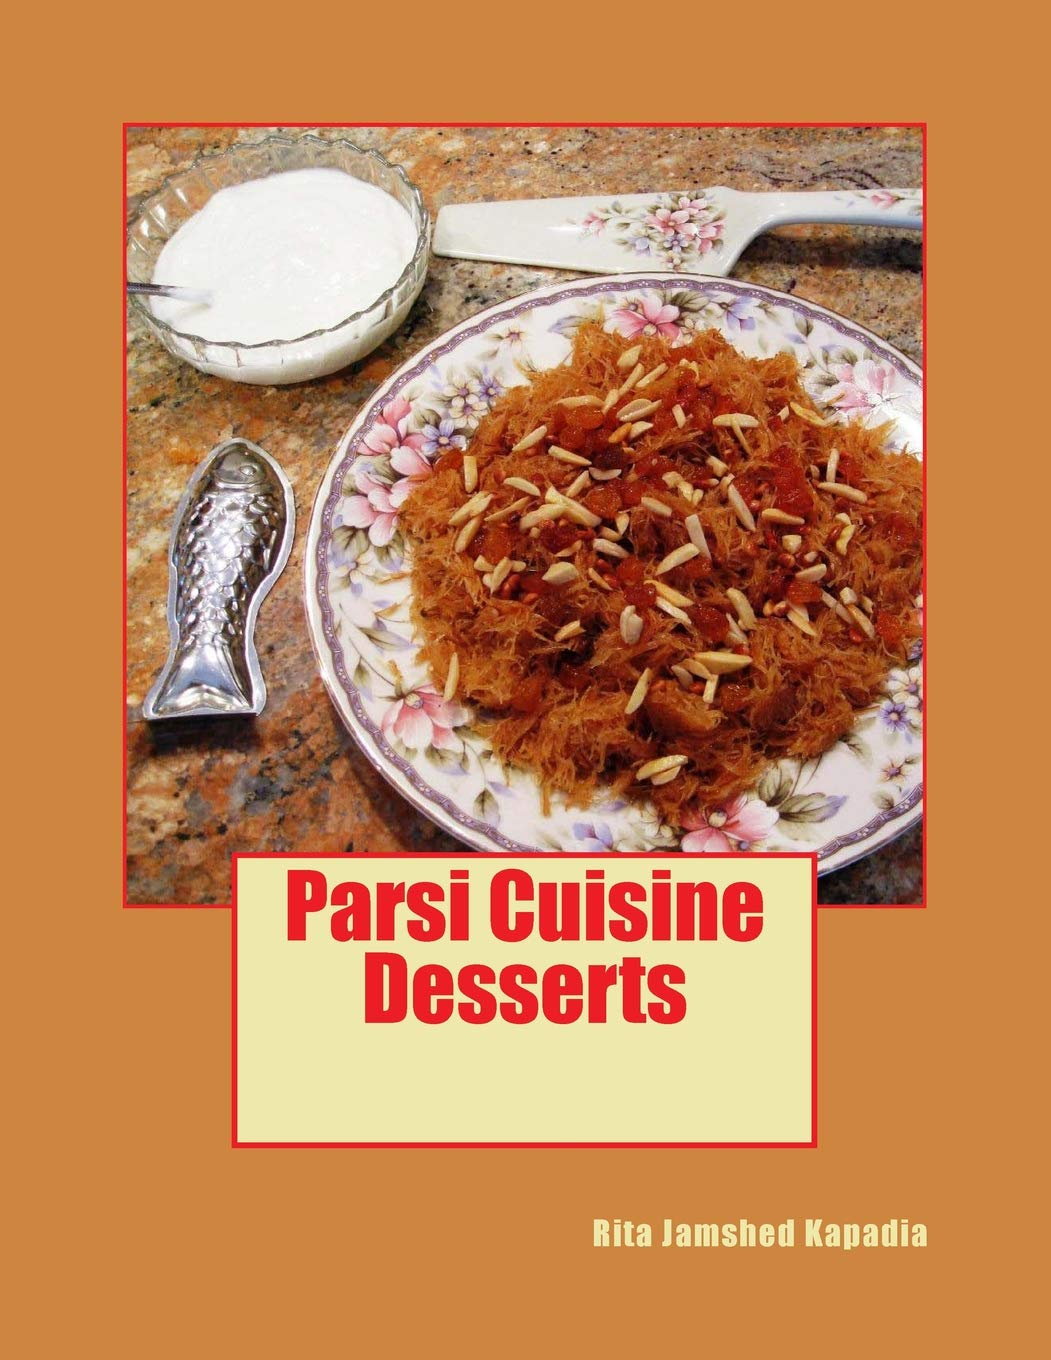 Cookbook / eBook : Desserts Paperback available worldwide and a eBook for India.